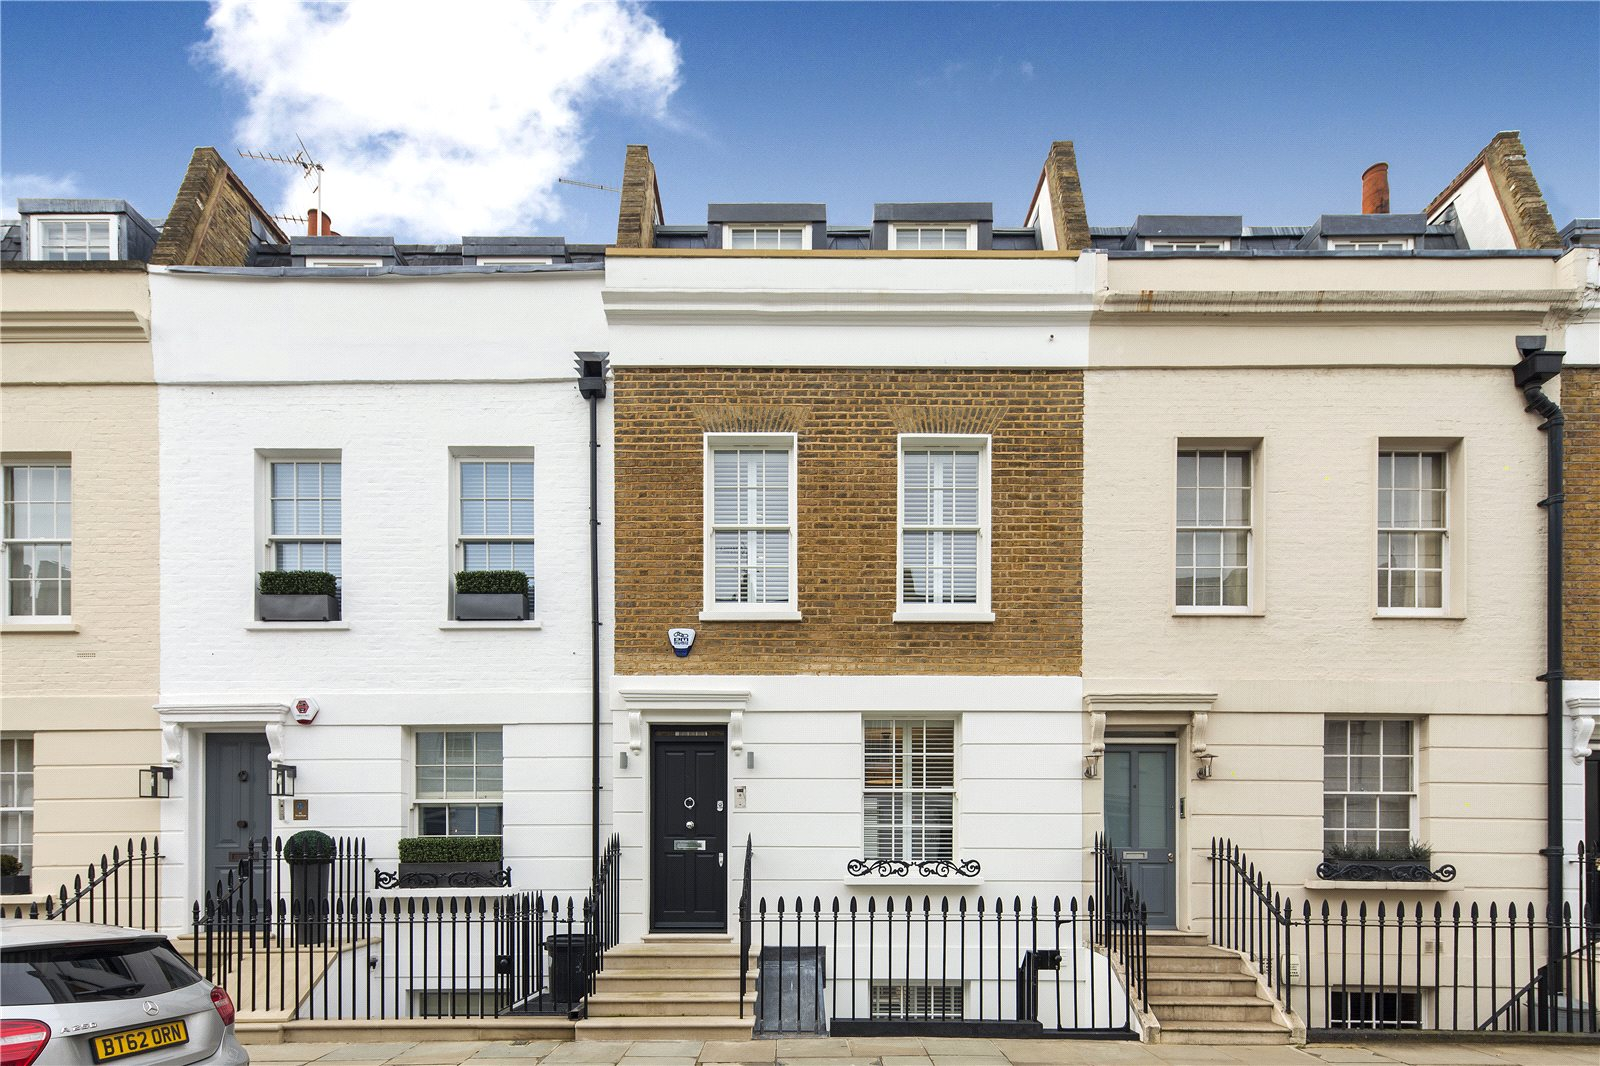 Single Family Home for Sale at Hasker Street, London, SW3 London, England